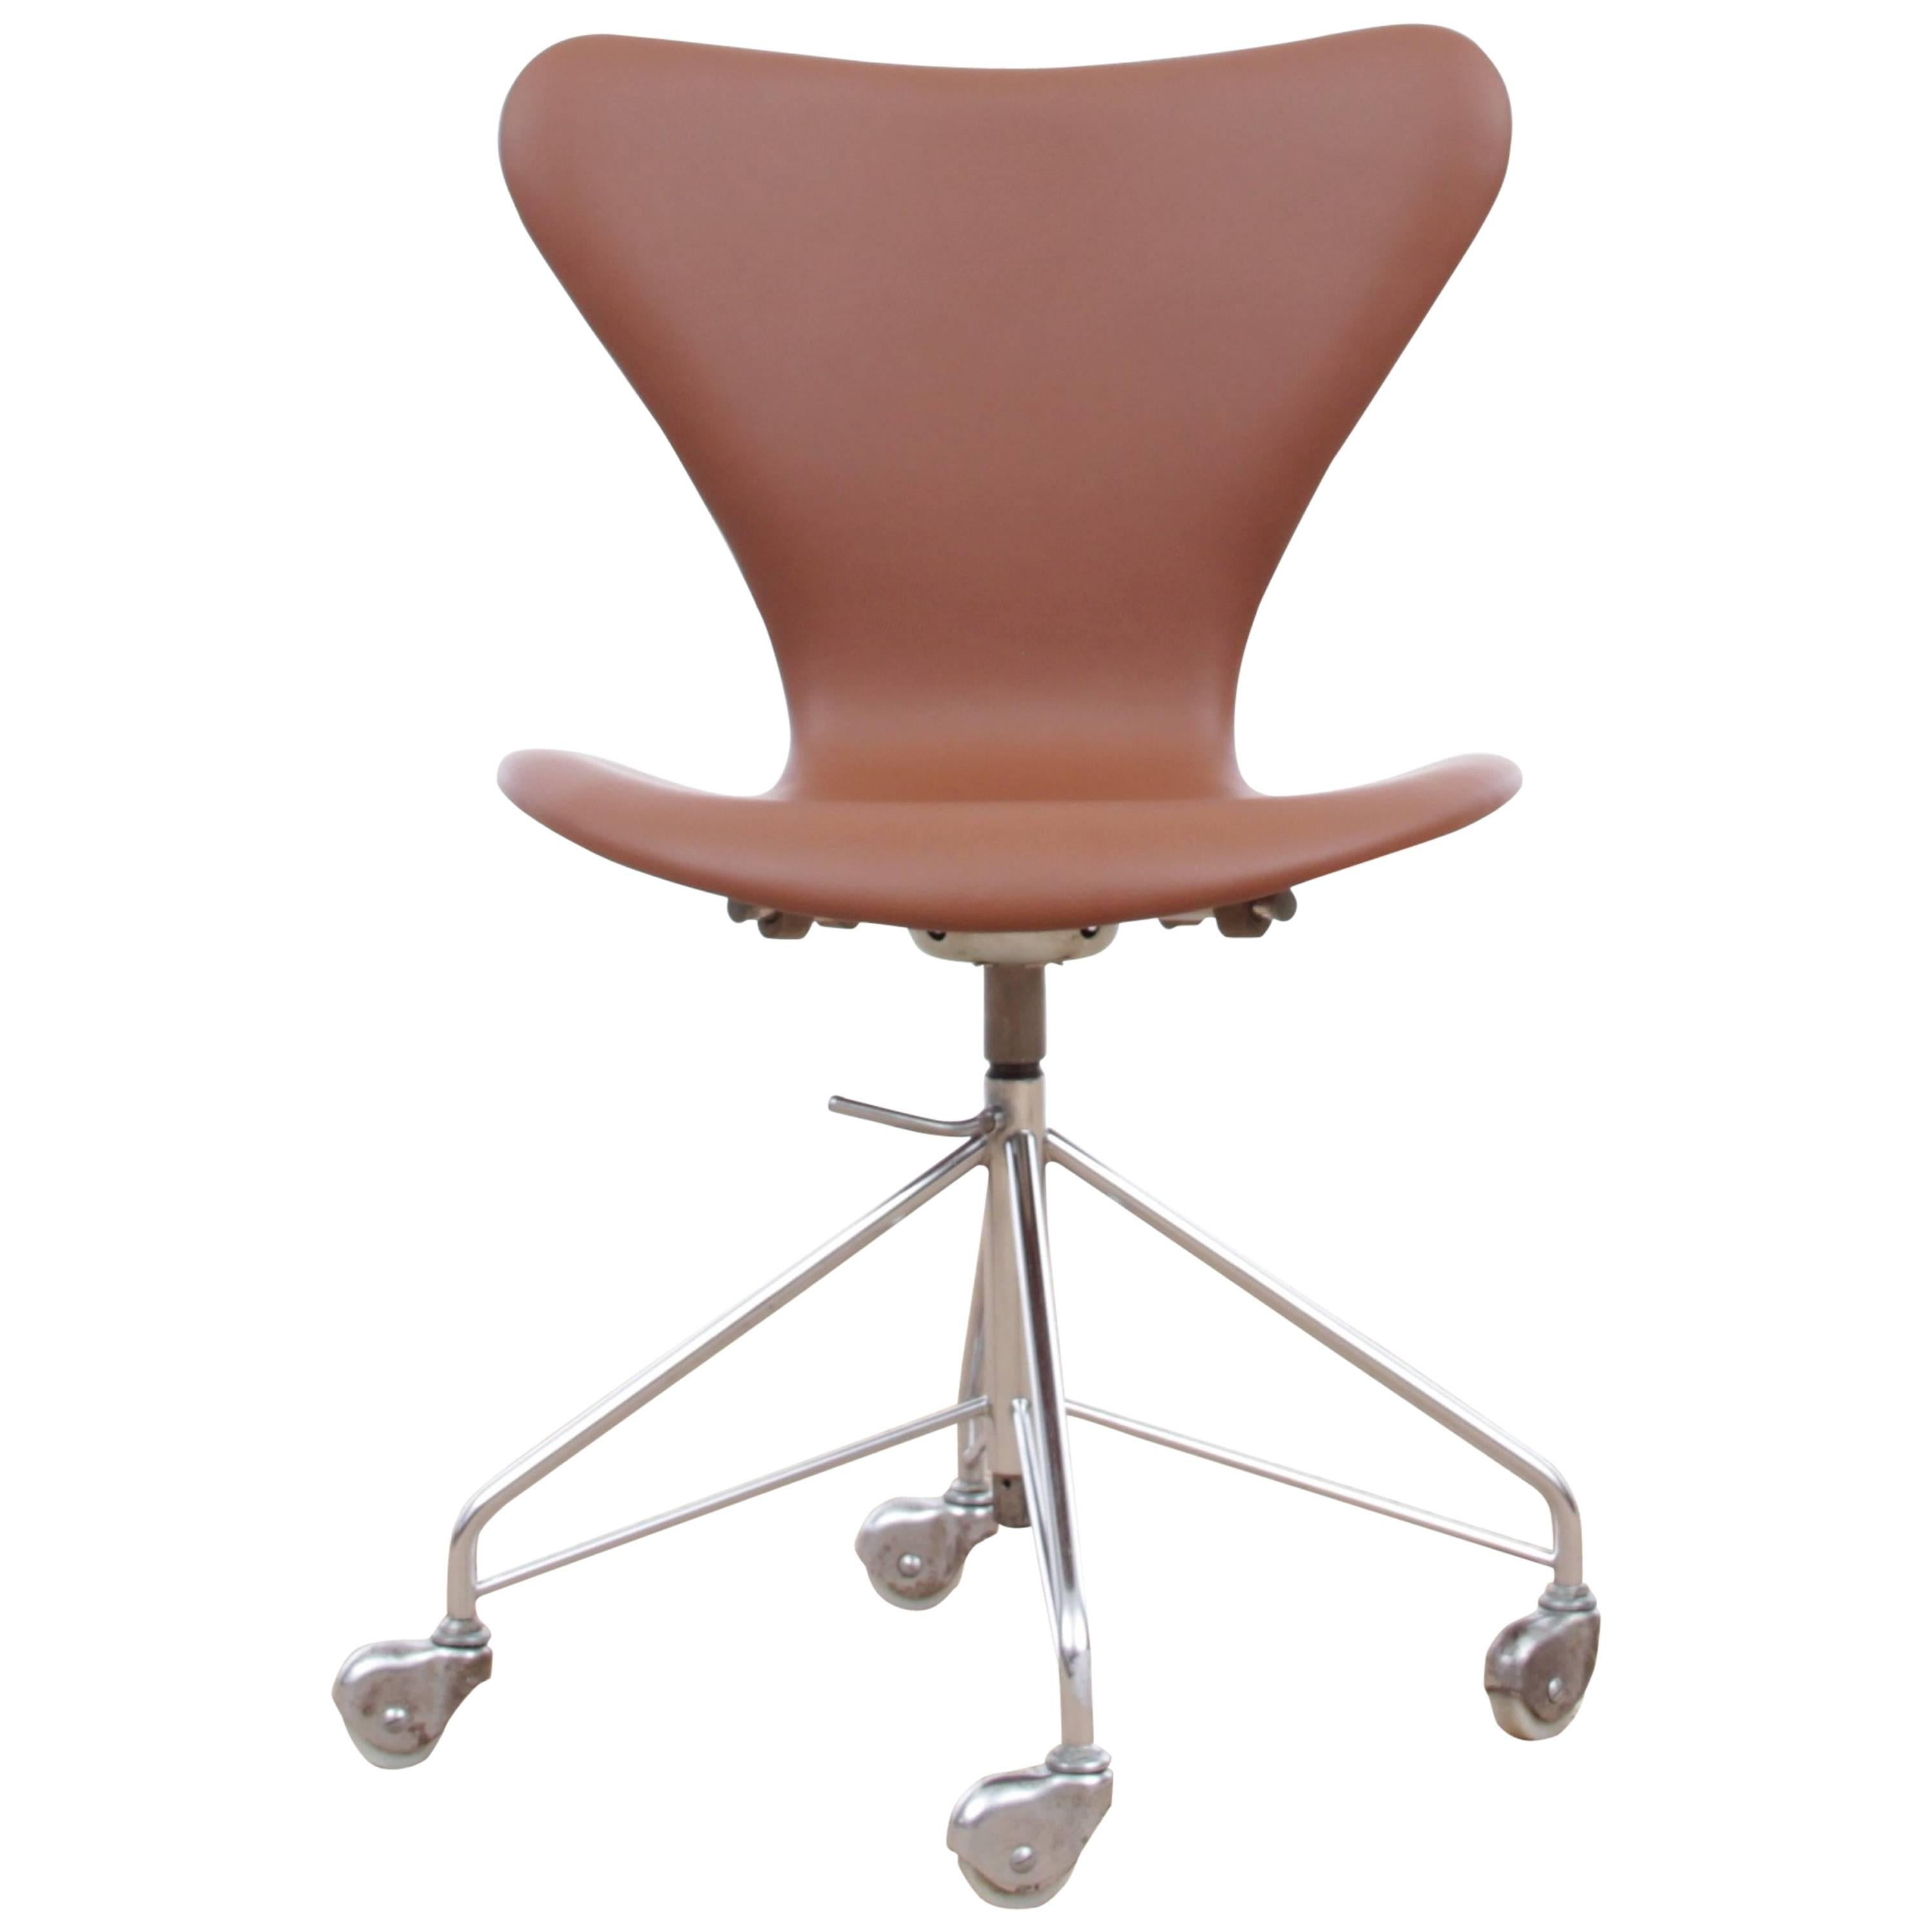 Mid Century Modern Scandinavian Leather Desk Chair Model 3117 By Arne  Jacobsen For Sale